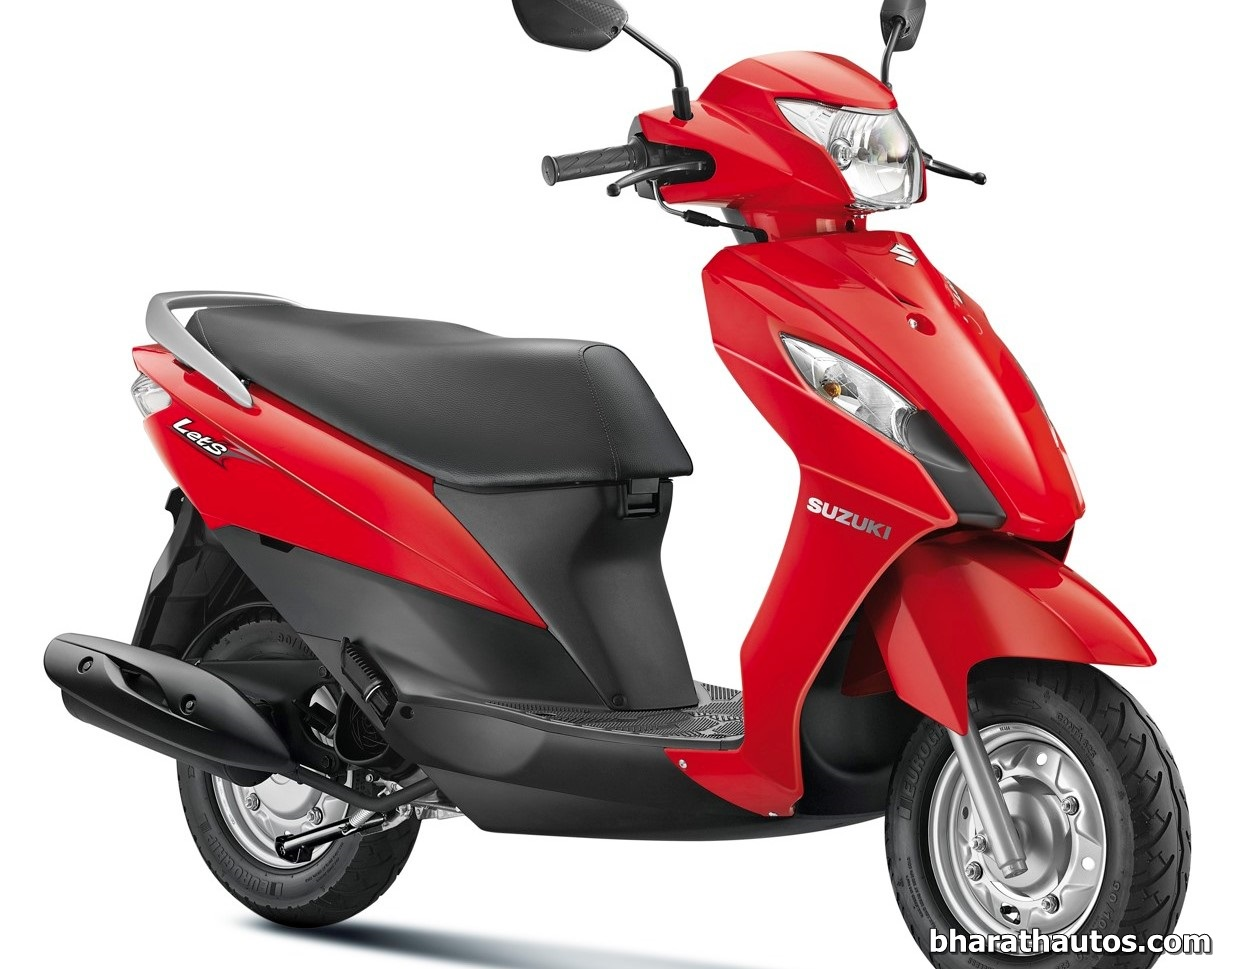 Suzuki Let S 110cc Scooter Launched In India Priced At Rs